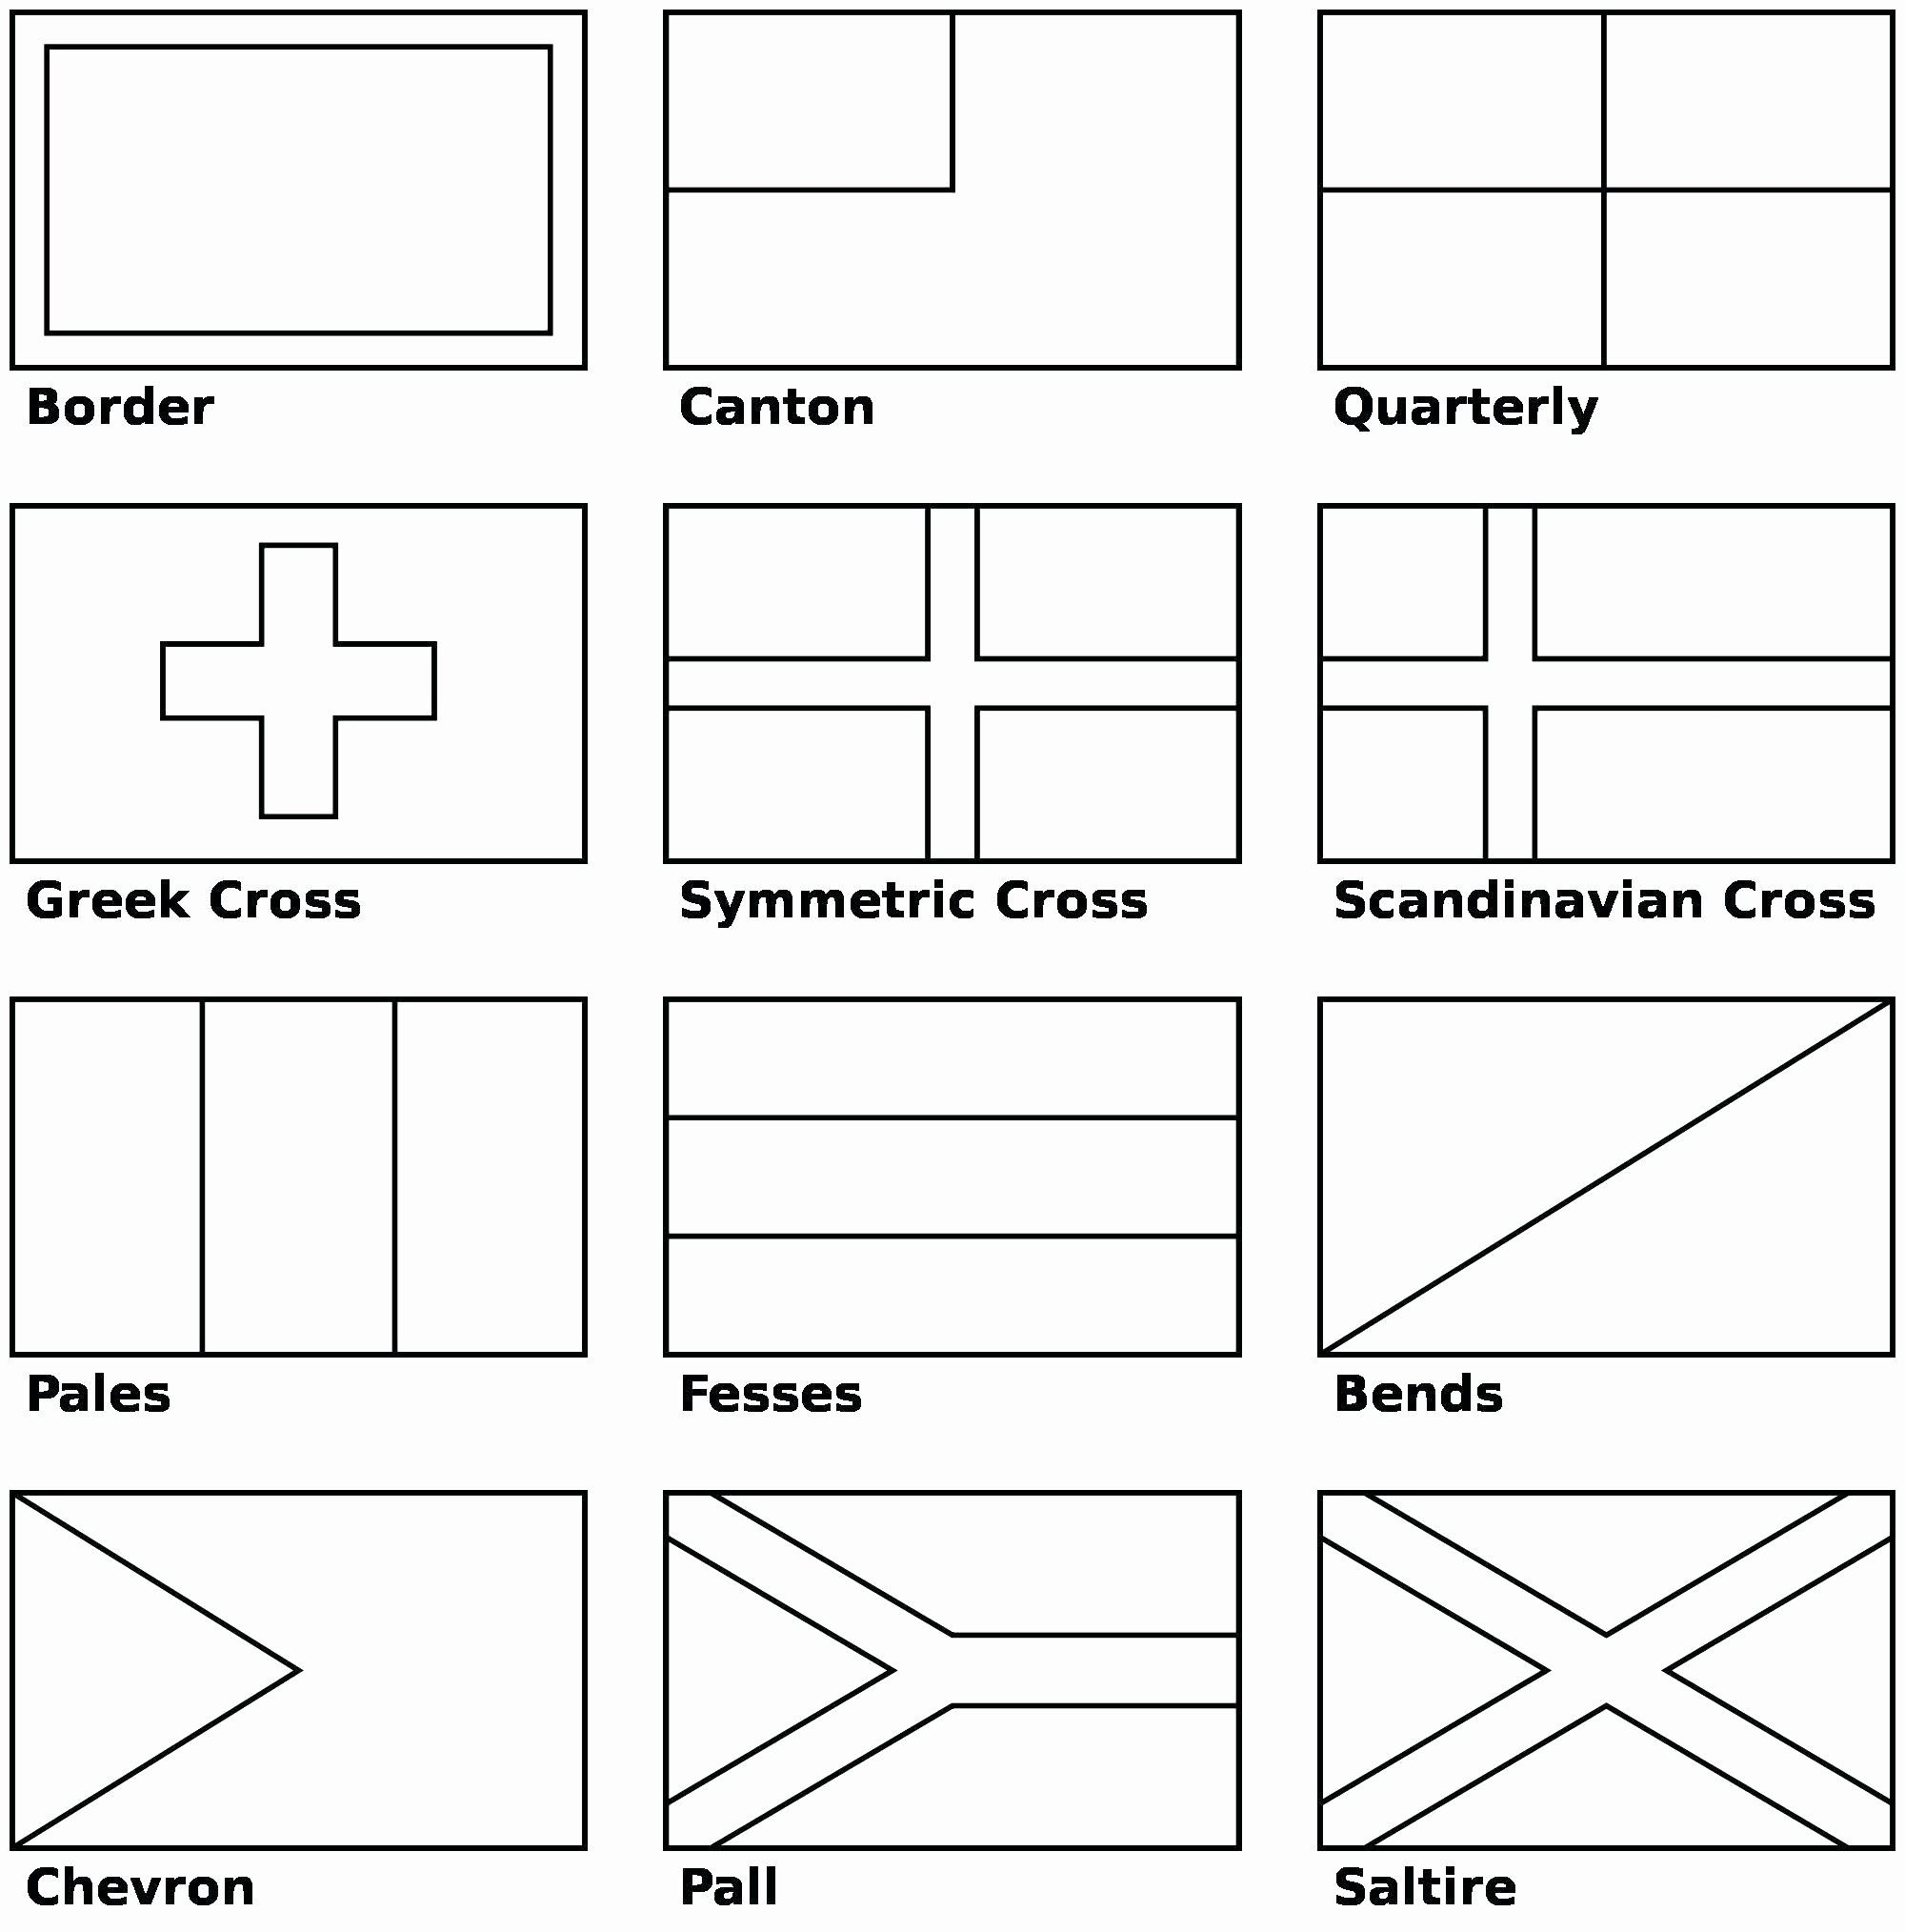 Australian Flag Coloring Sheet Best Of Collection Flags The World To Color Immagini Schede Didattiche Scuola